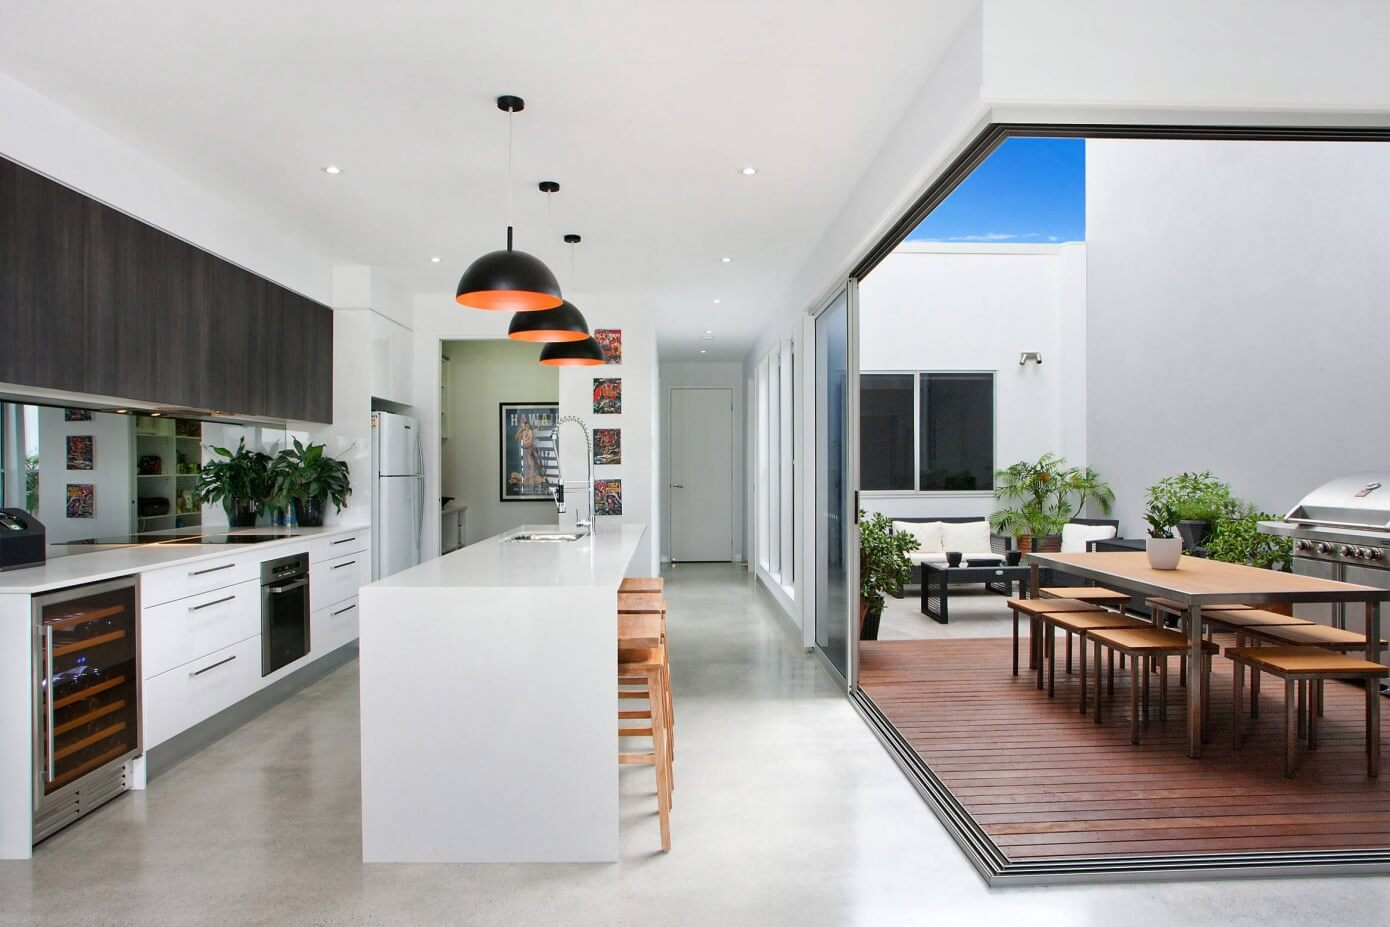 005 house sunshine coast principal plans homeadore for Beach house designs sunshine coast